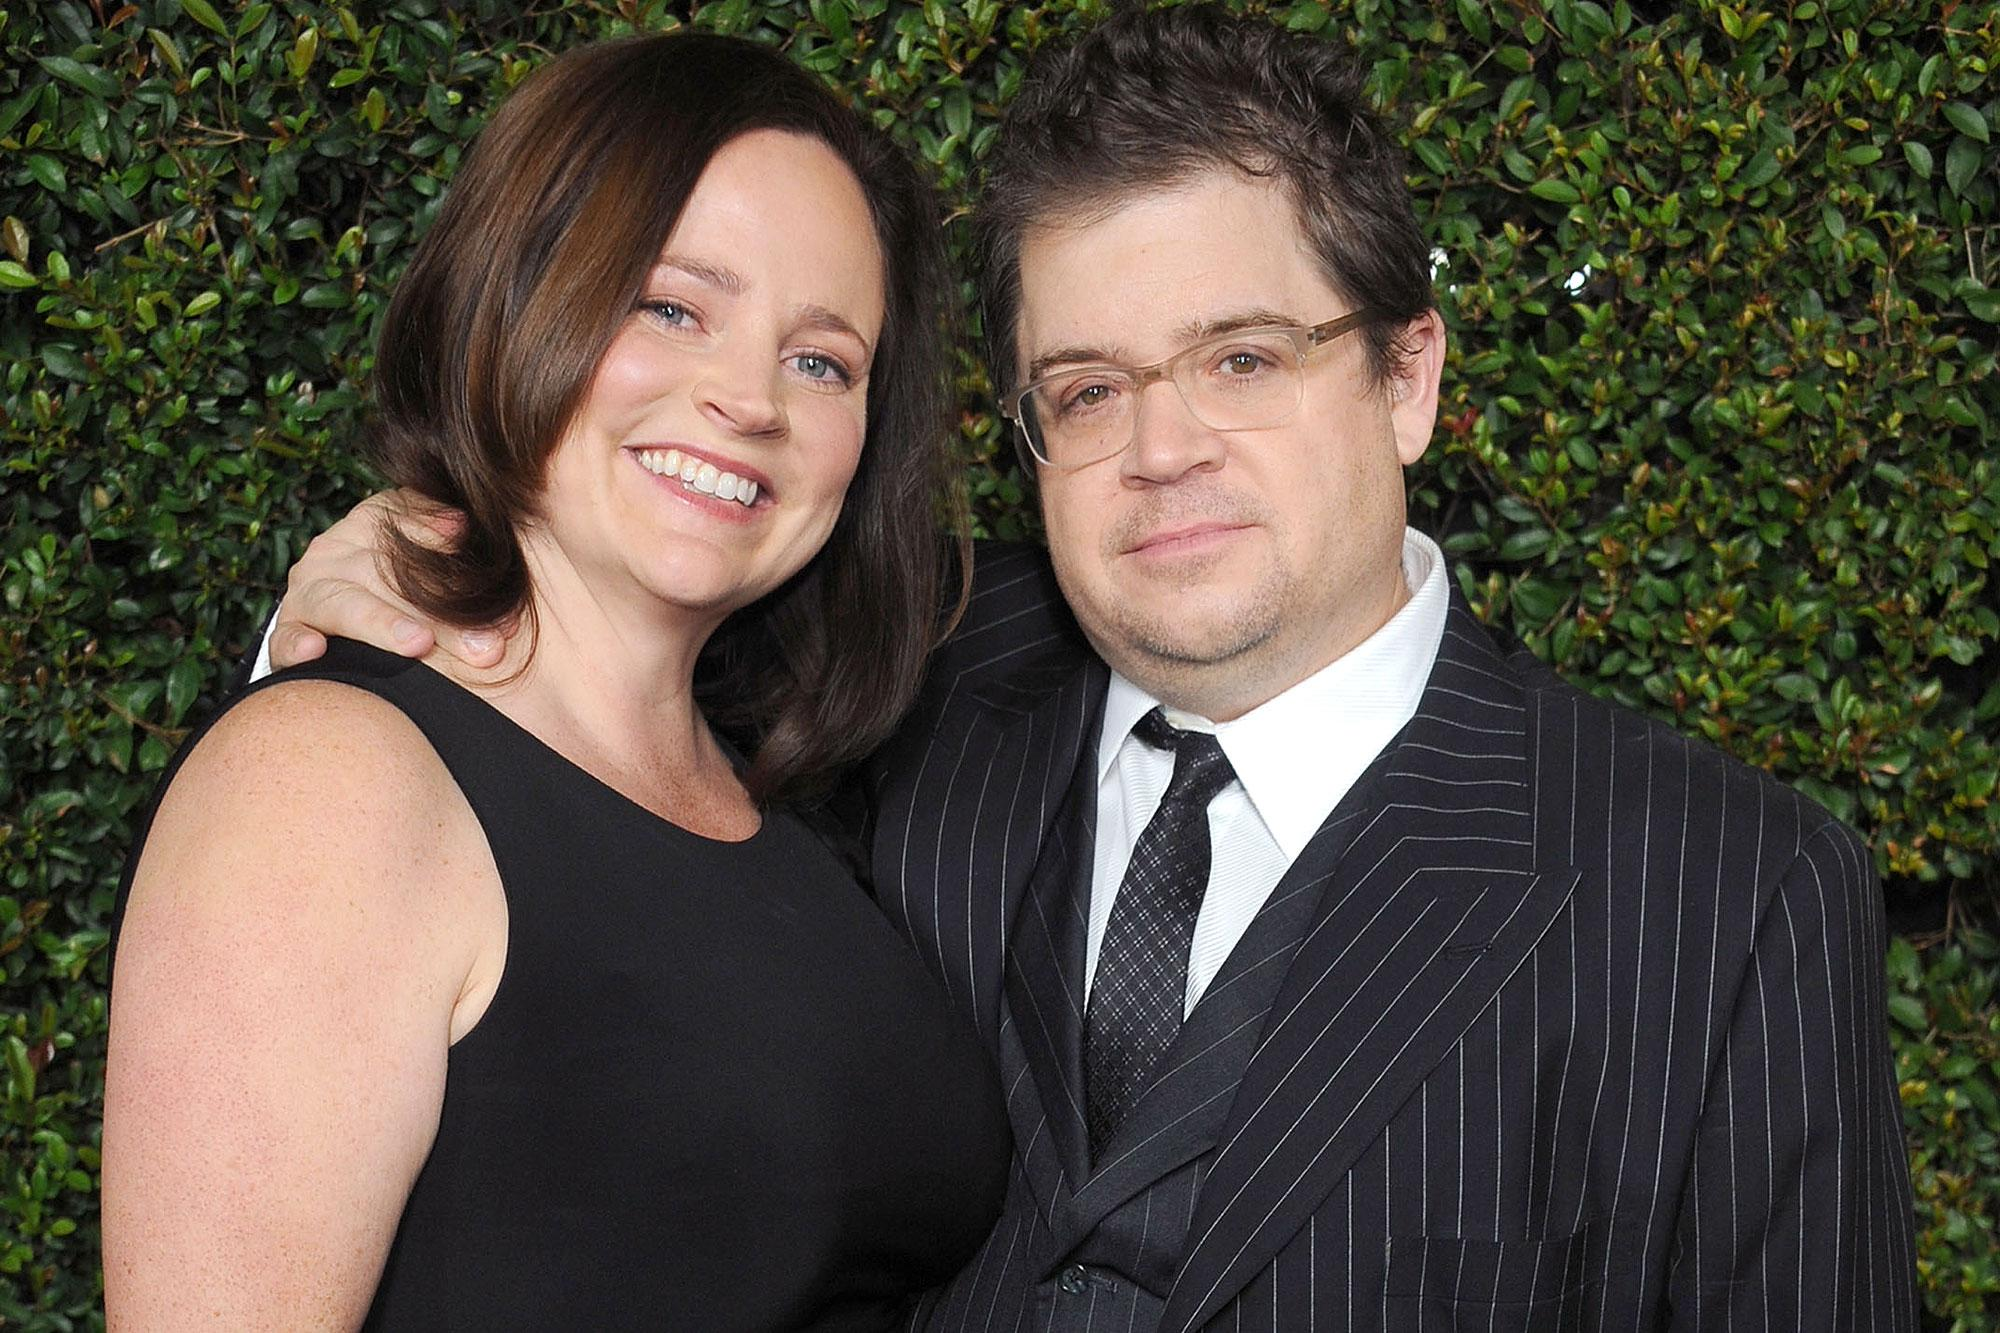 Patton Oswalt Opens Up on Heartbreak of Finding His Wife Dead – and Reveals She May Have Accidentally Overdosed